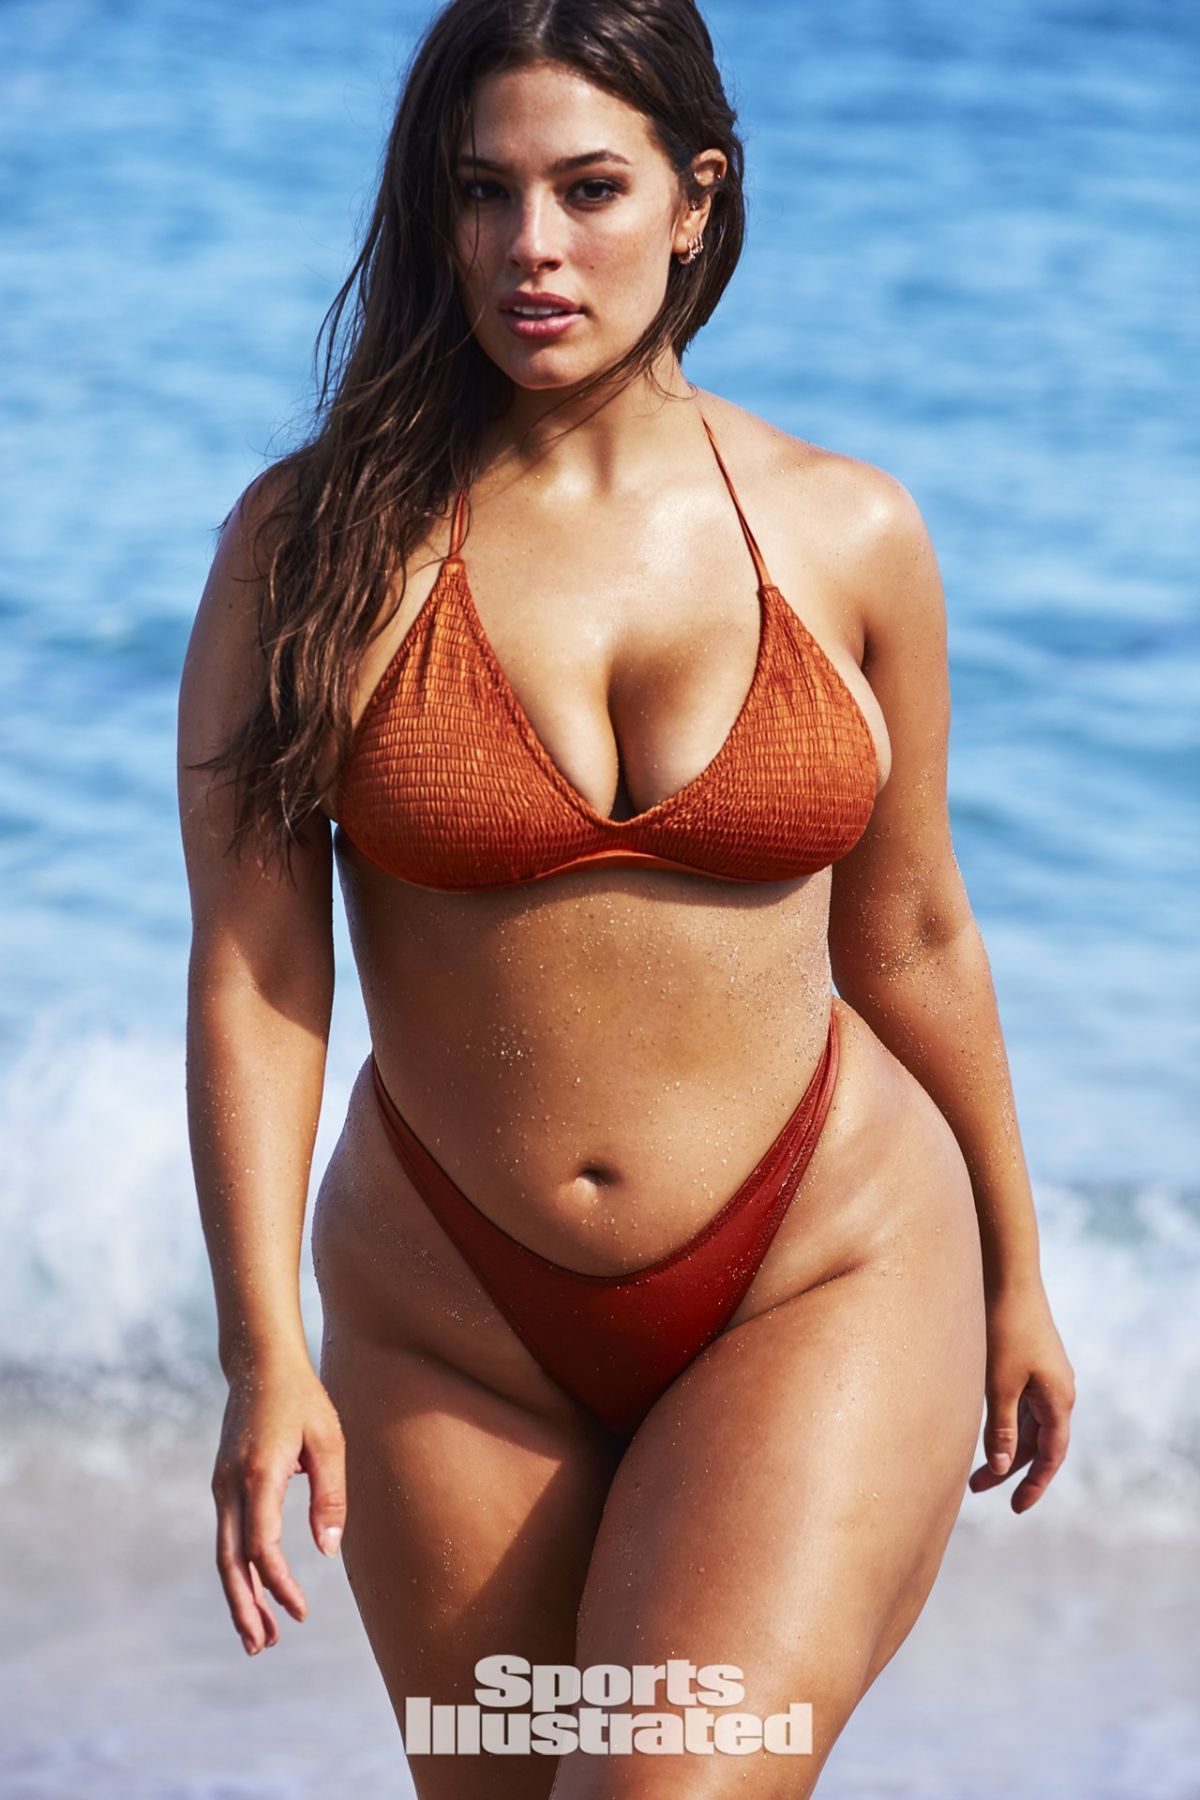 170 kg model, she became the world's top supermodel by her sexy charm